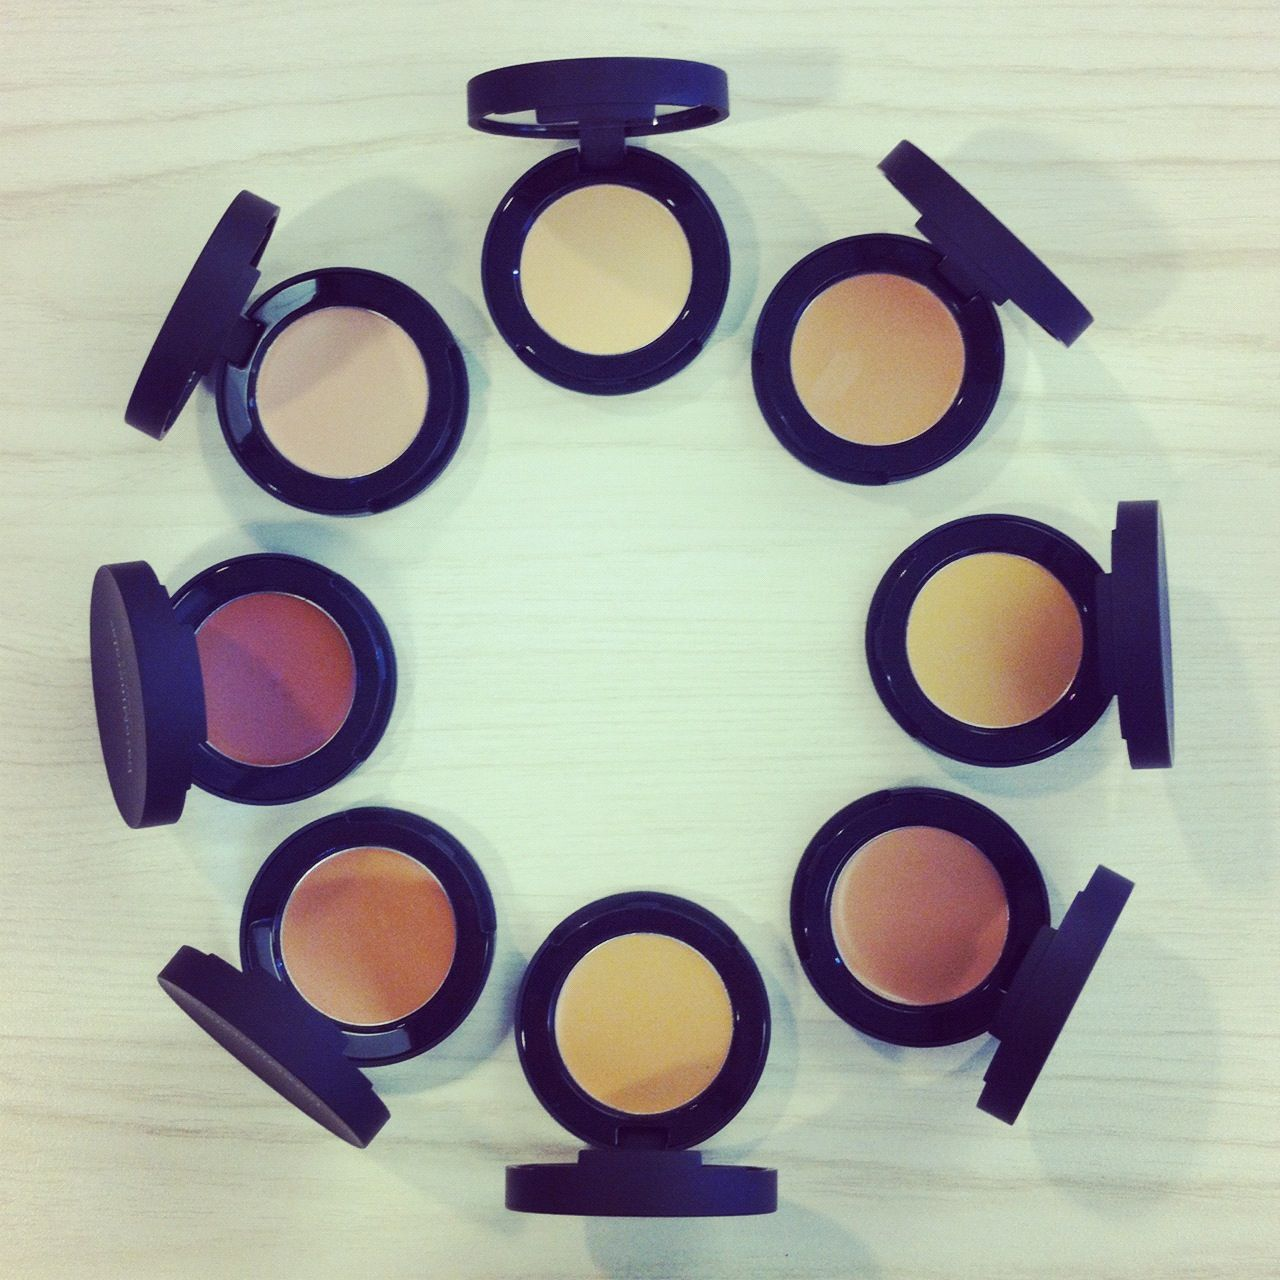 More than a concealer, bareMinerals SPF 20 Correcting